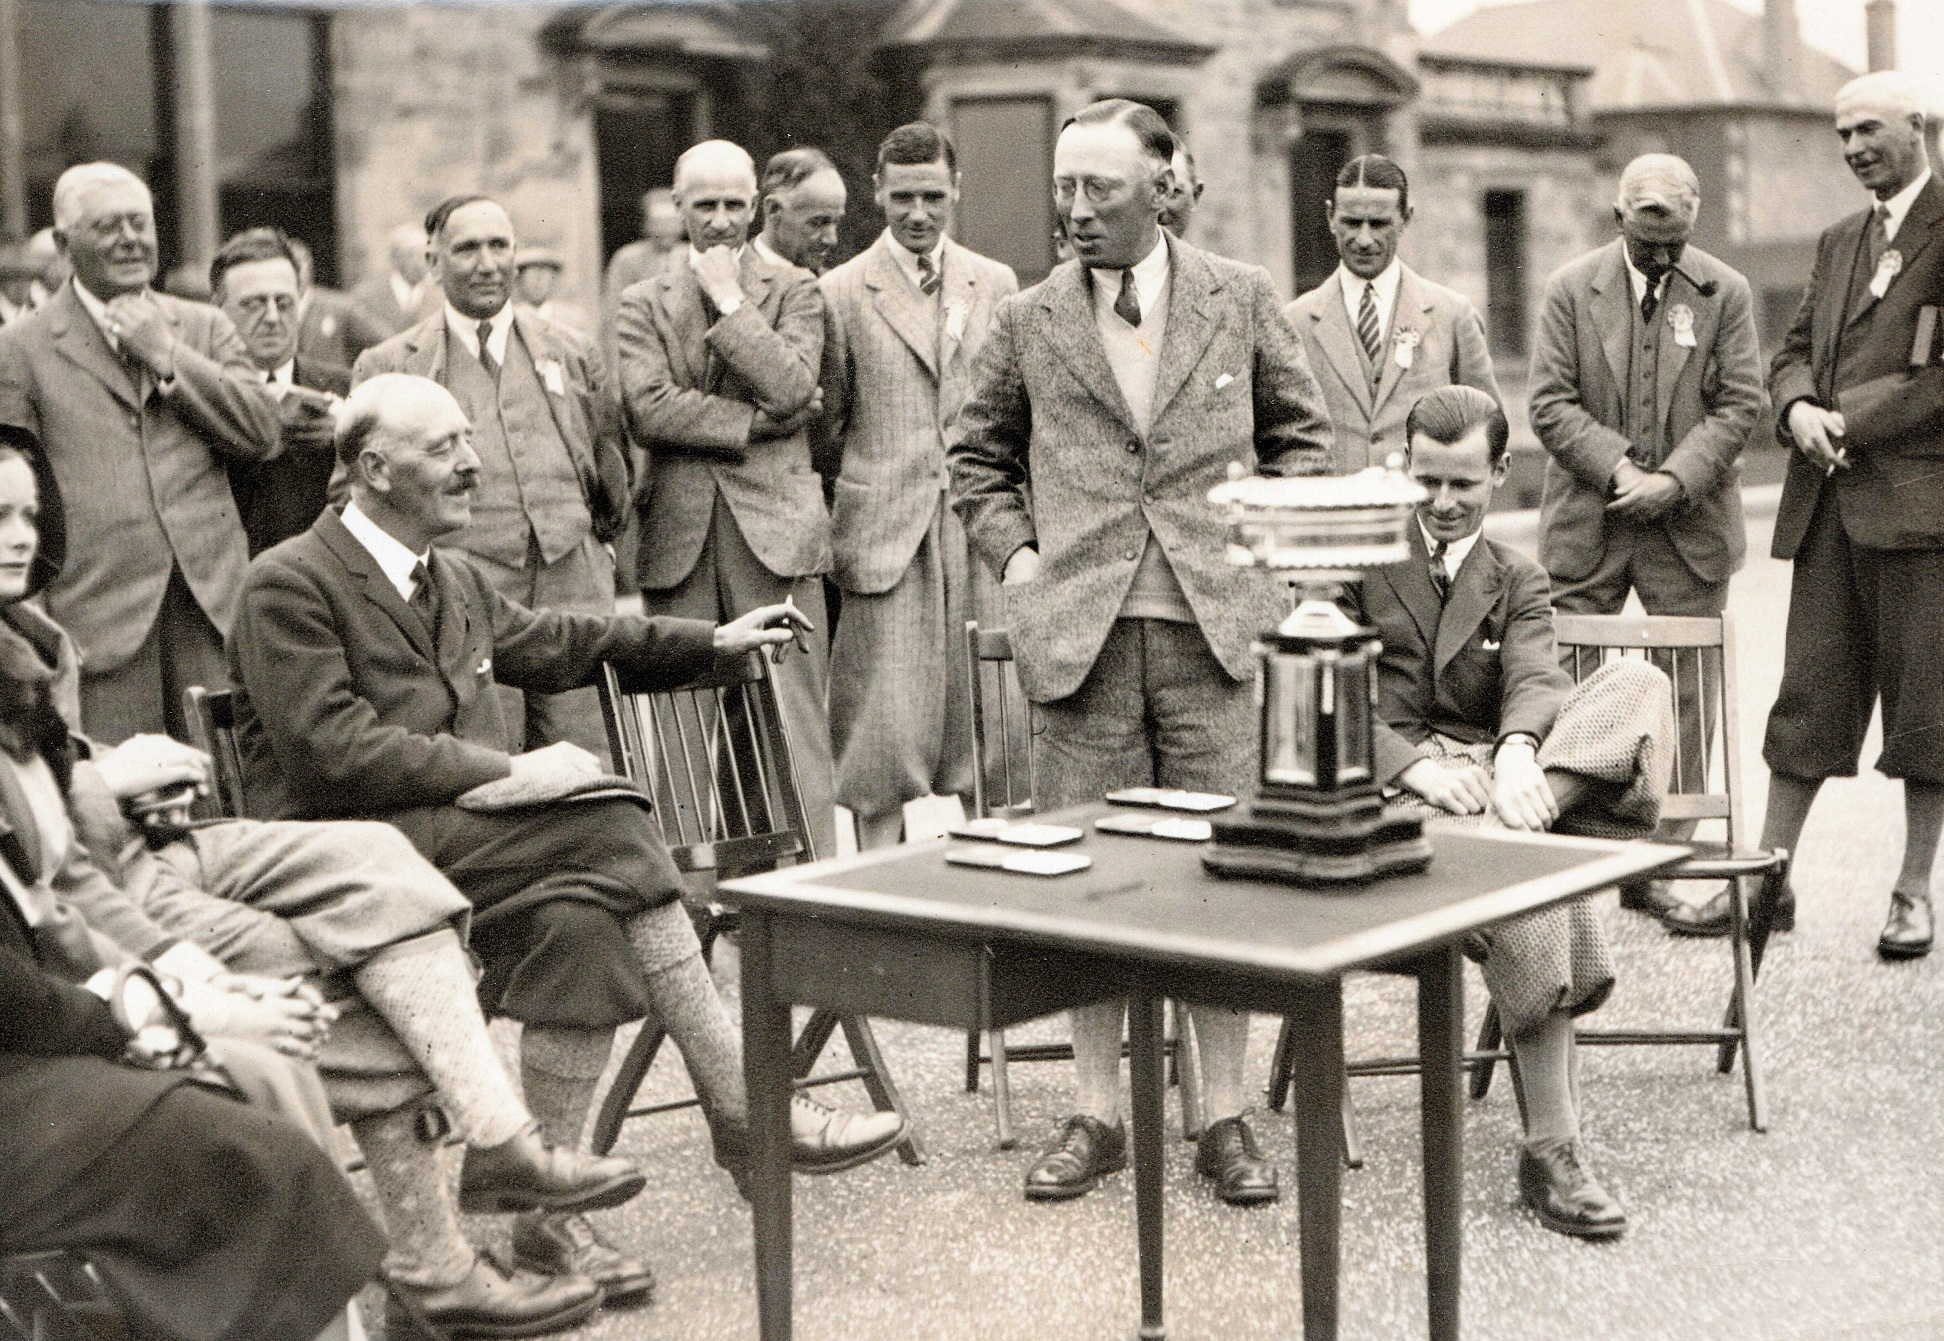 The presentation group for the Amateur Competition 1931